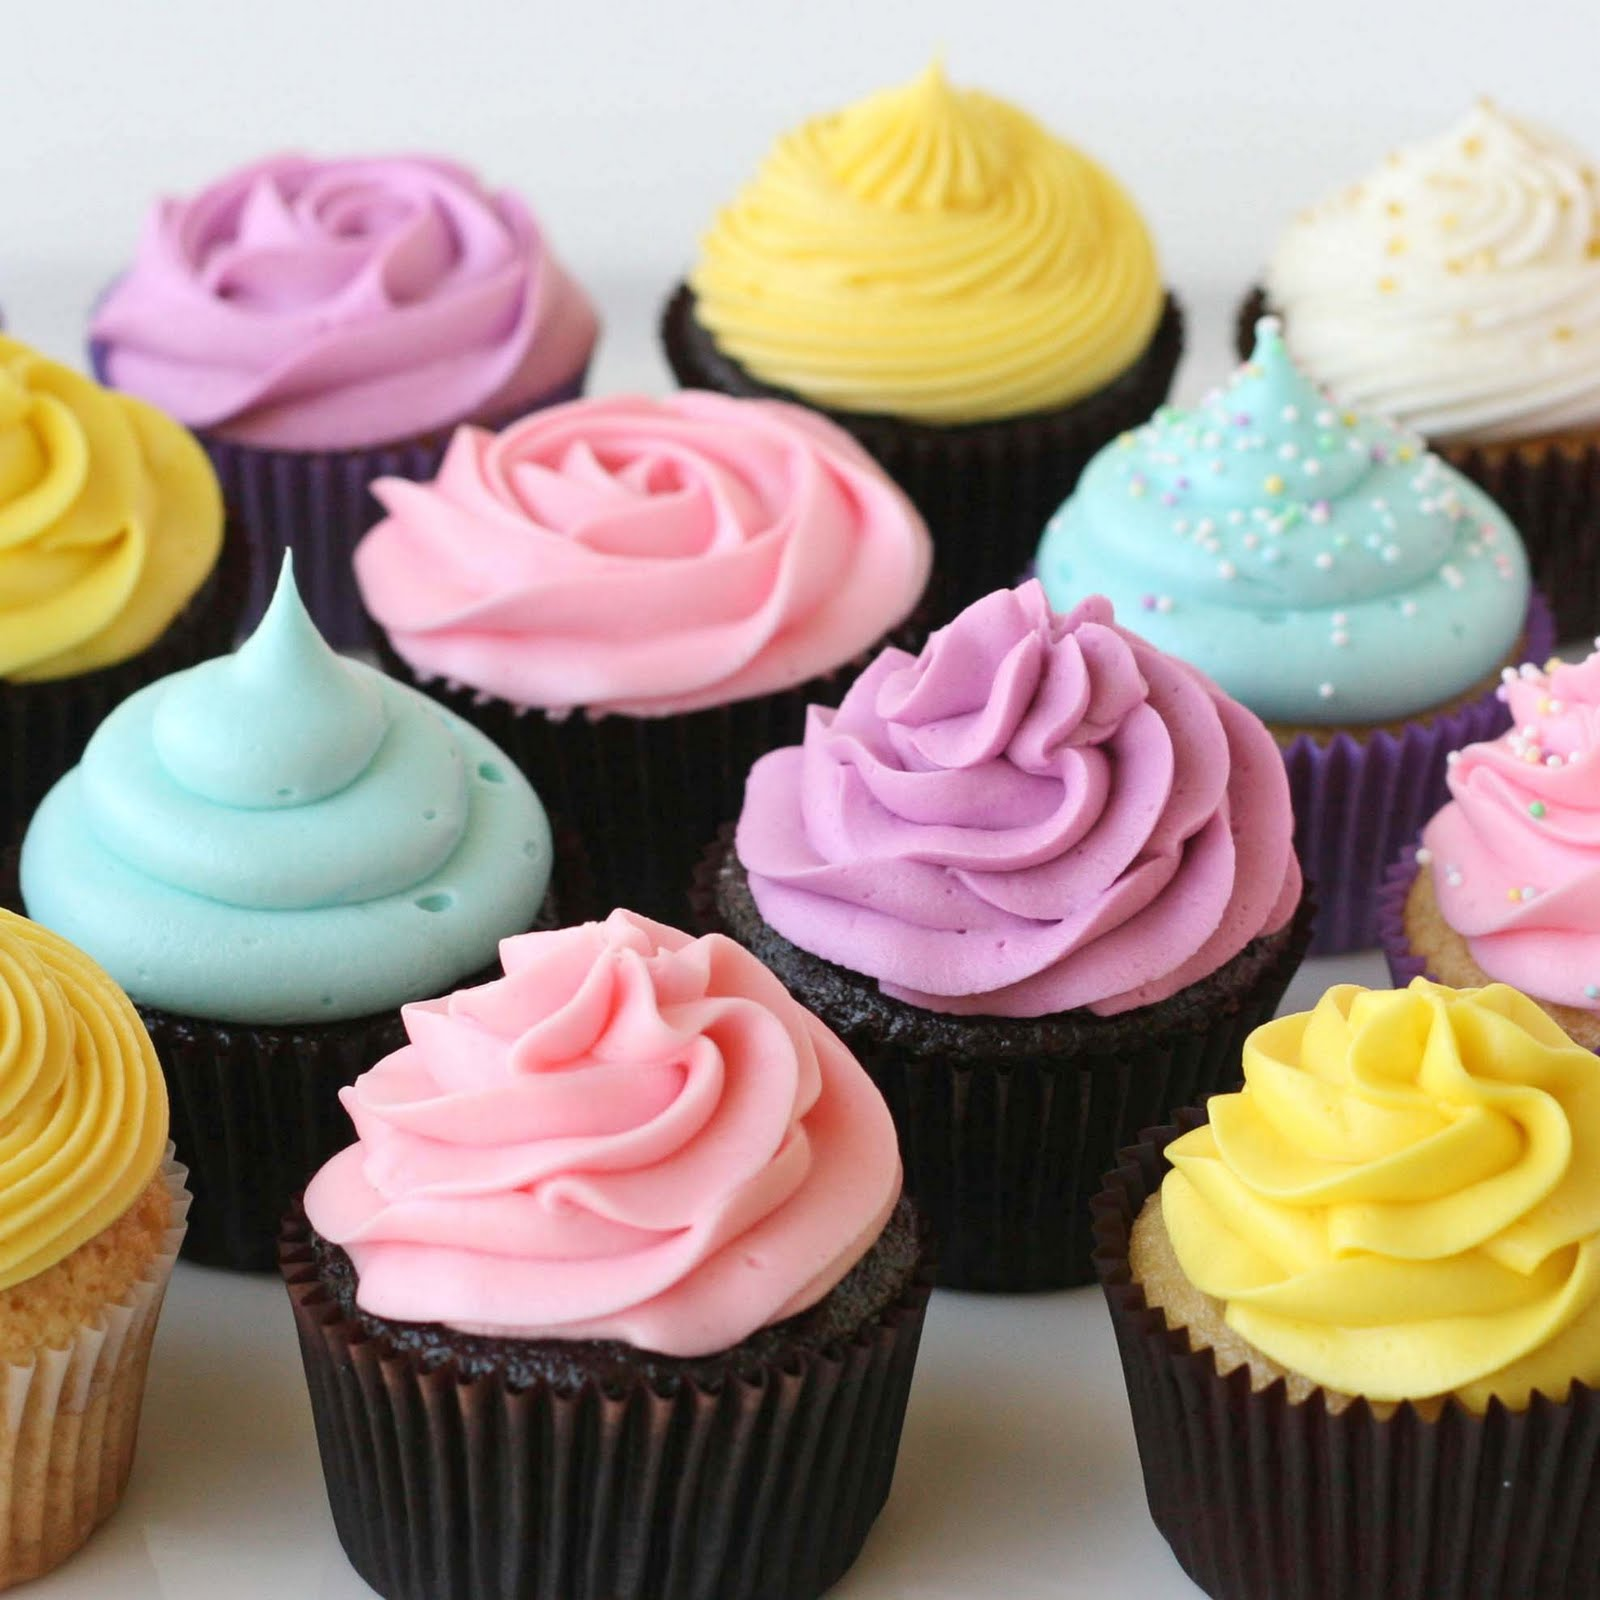 Cupcake Decorating Ideas Simple : Glorious Treats: Cupcake decorating